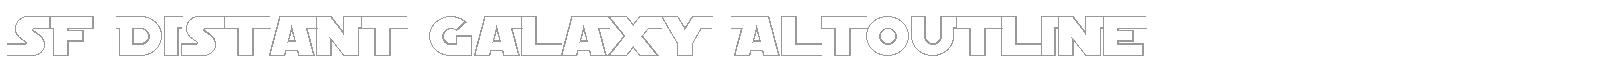 Font SF Distant Galaxy AltOutline